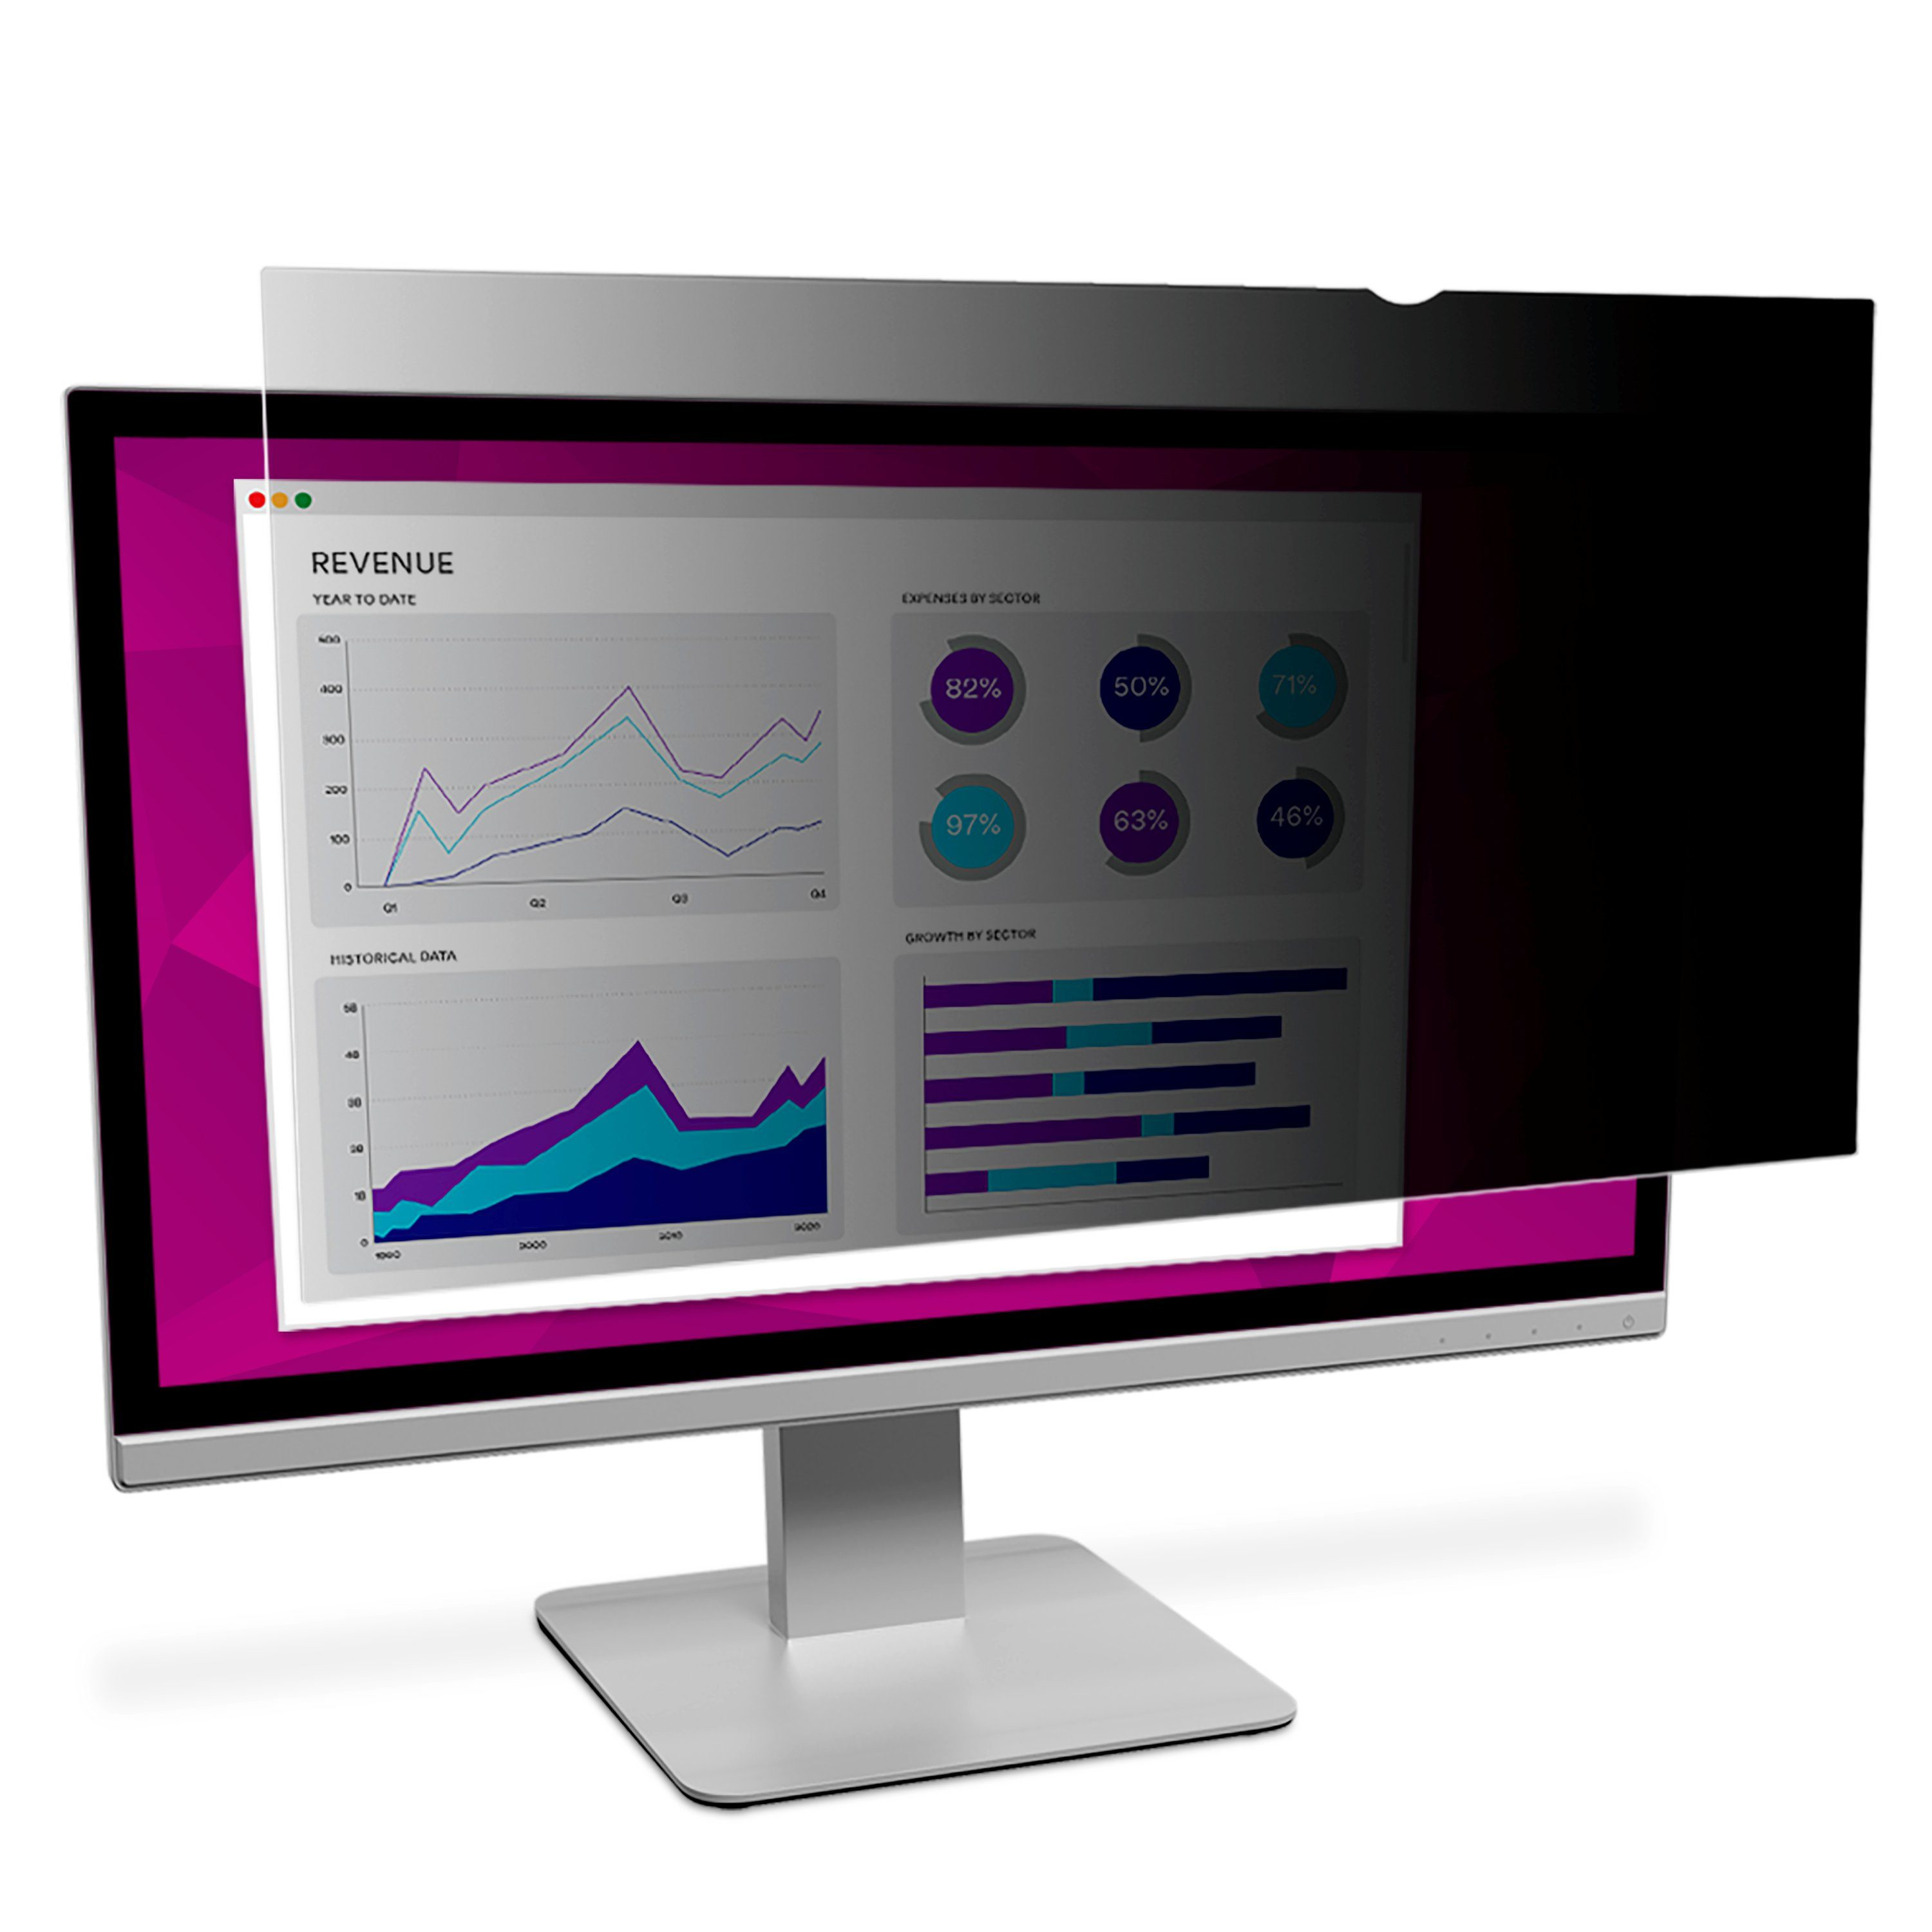 "3M High Clarity Privacy Filter For 27.0"" Widescreen Monitor 98044065542 - eet01"